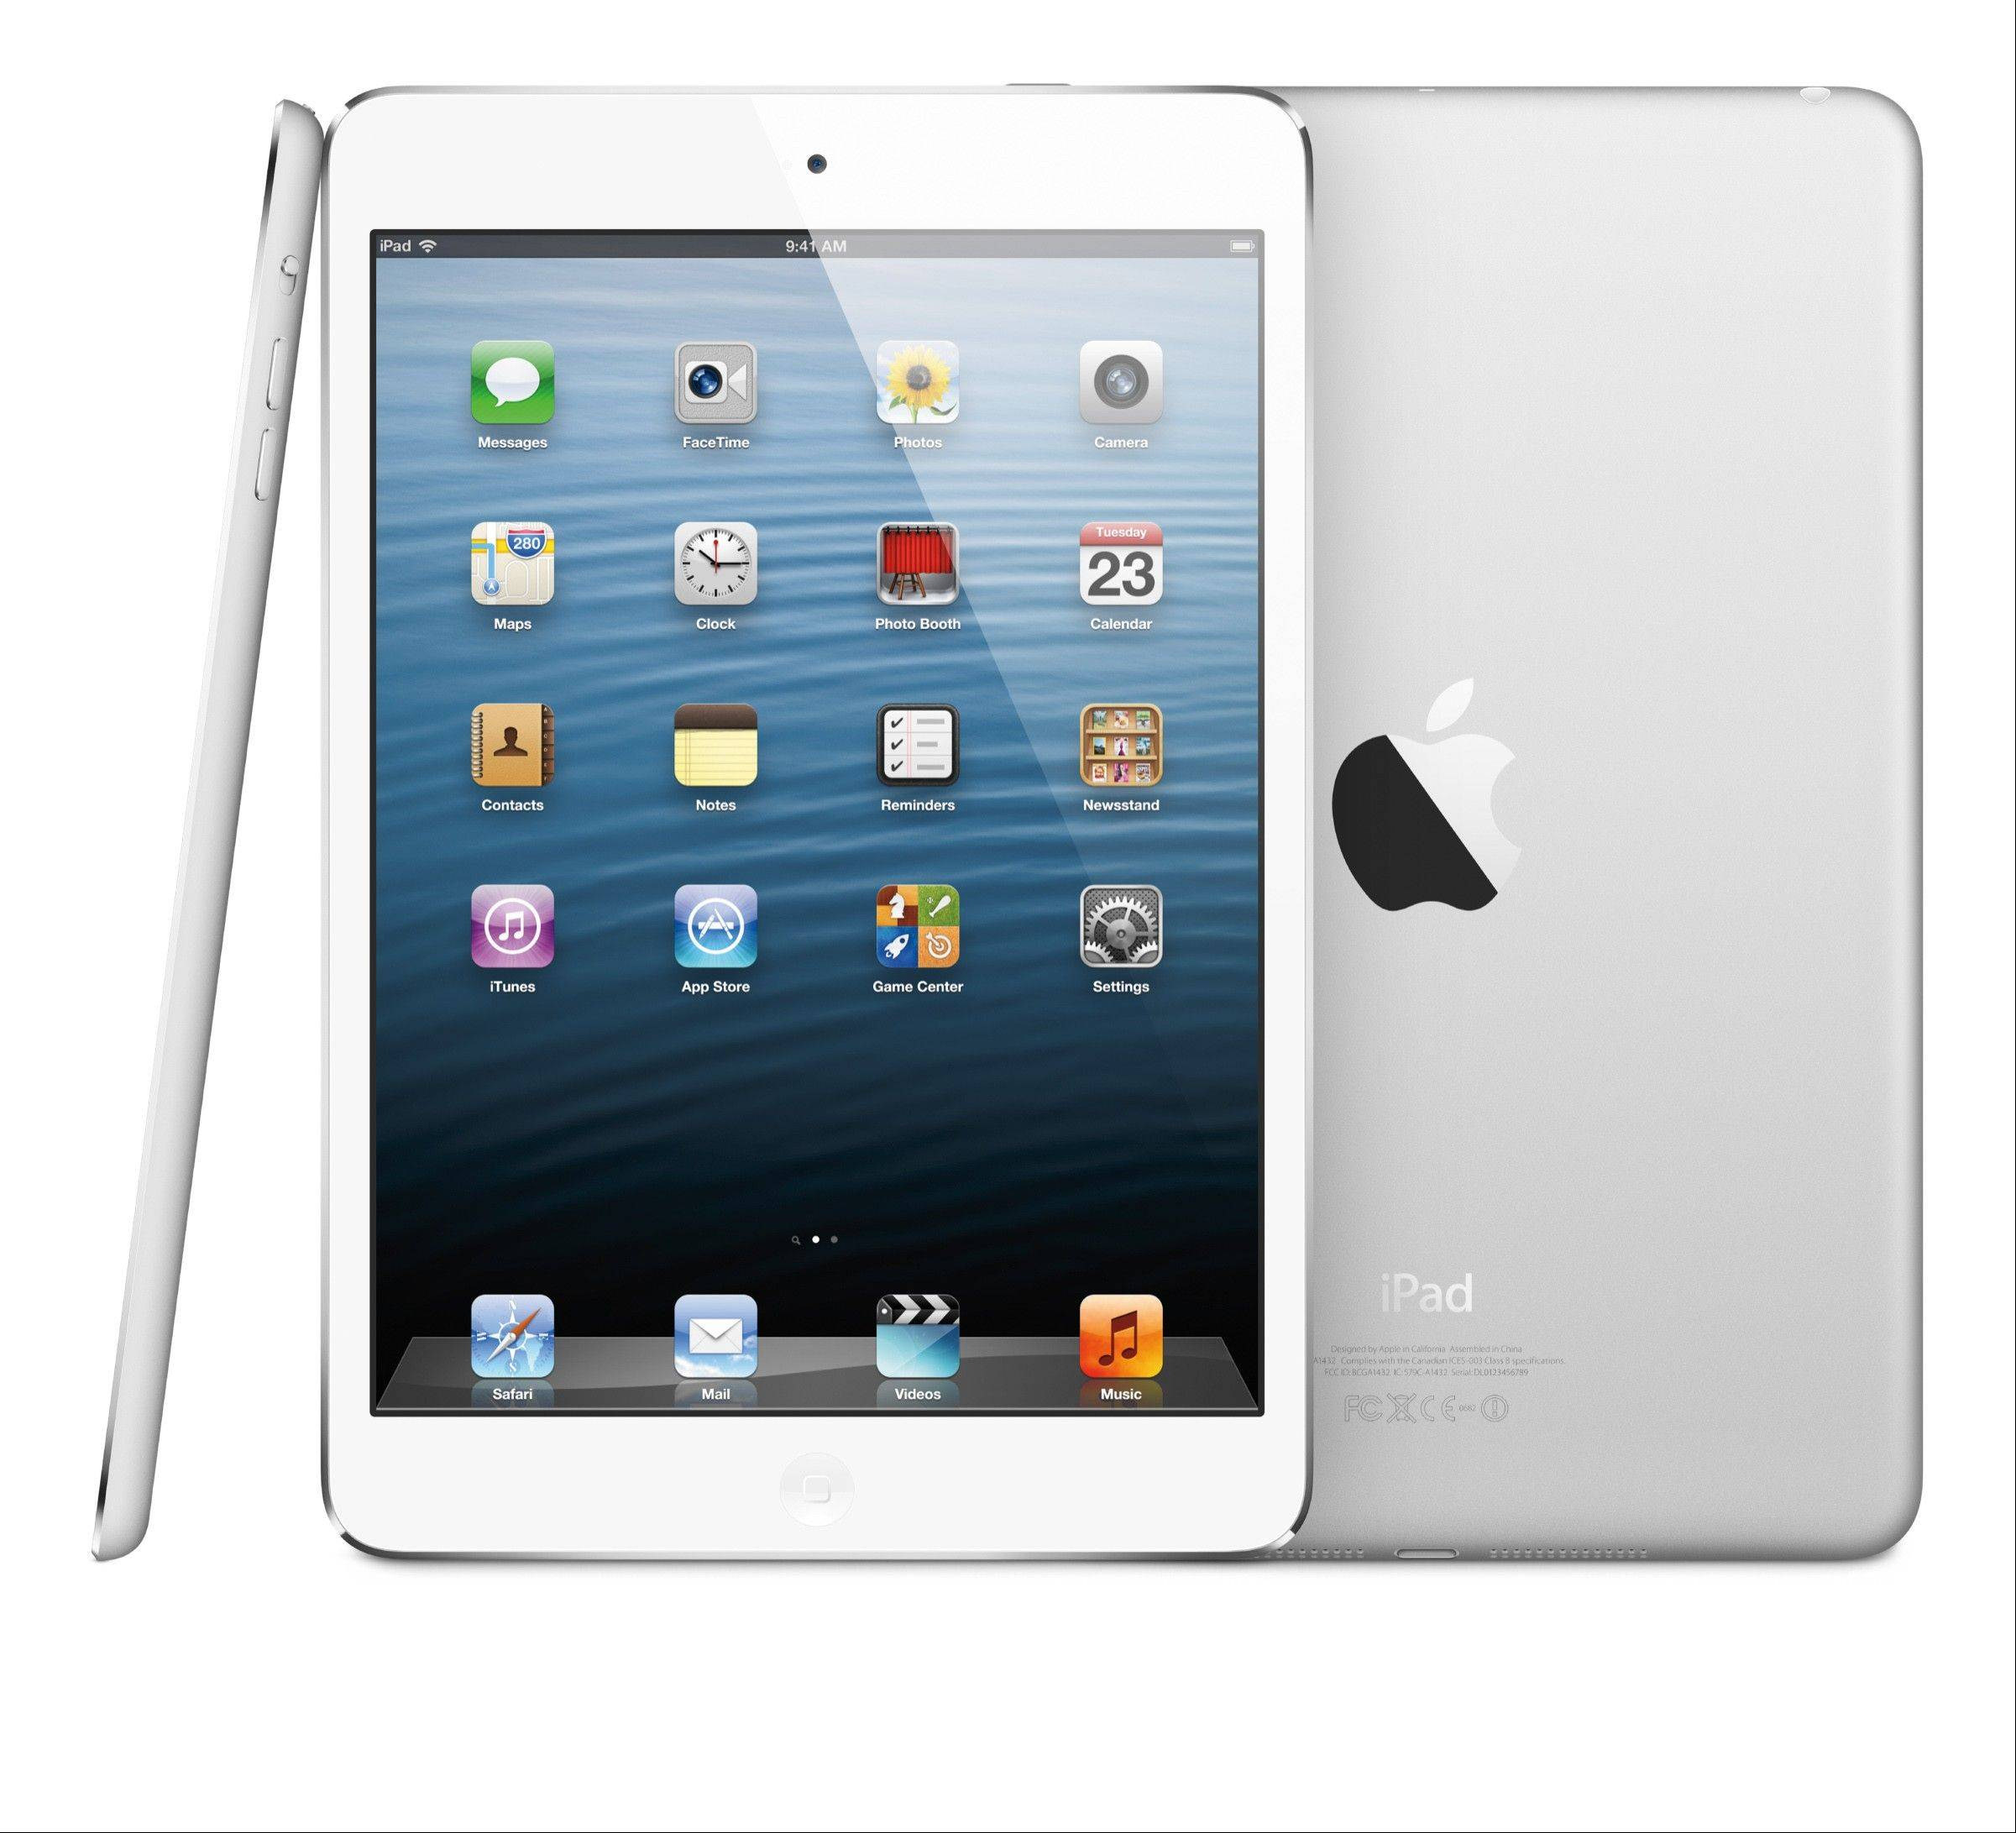 The Apple Inc. iPad mini is seen in this undated handout photo released to the media on Tuesday, Oct. 23, 2012. The device boasts a 7.9-inch screen diagonally, compared with the 9.7-inch screen of the current iPad.